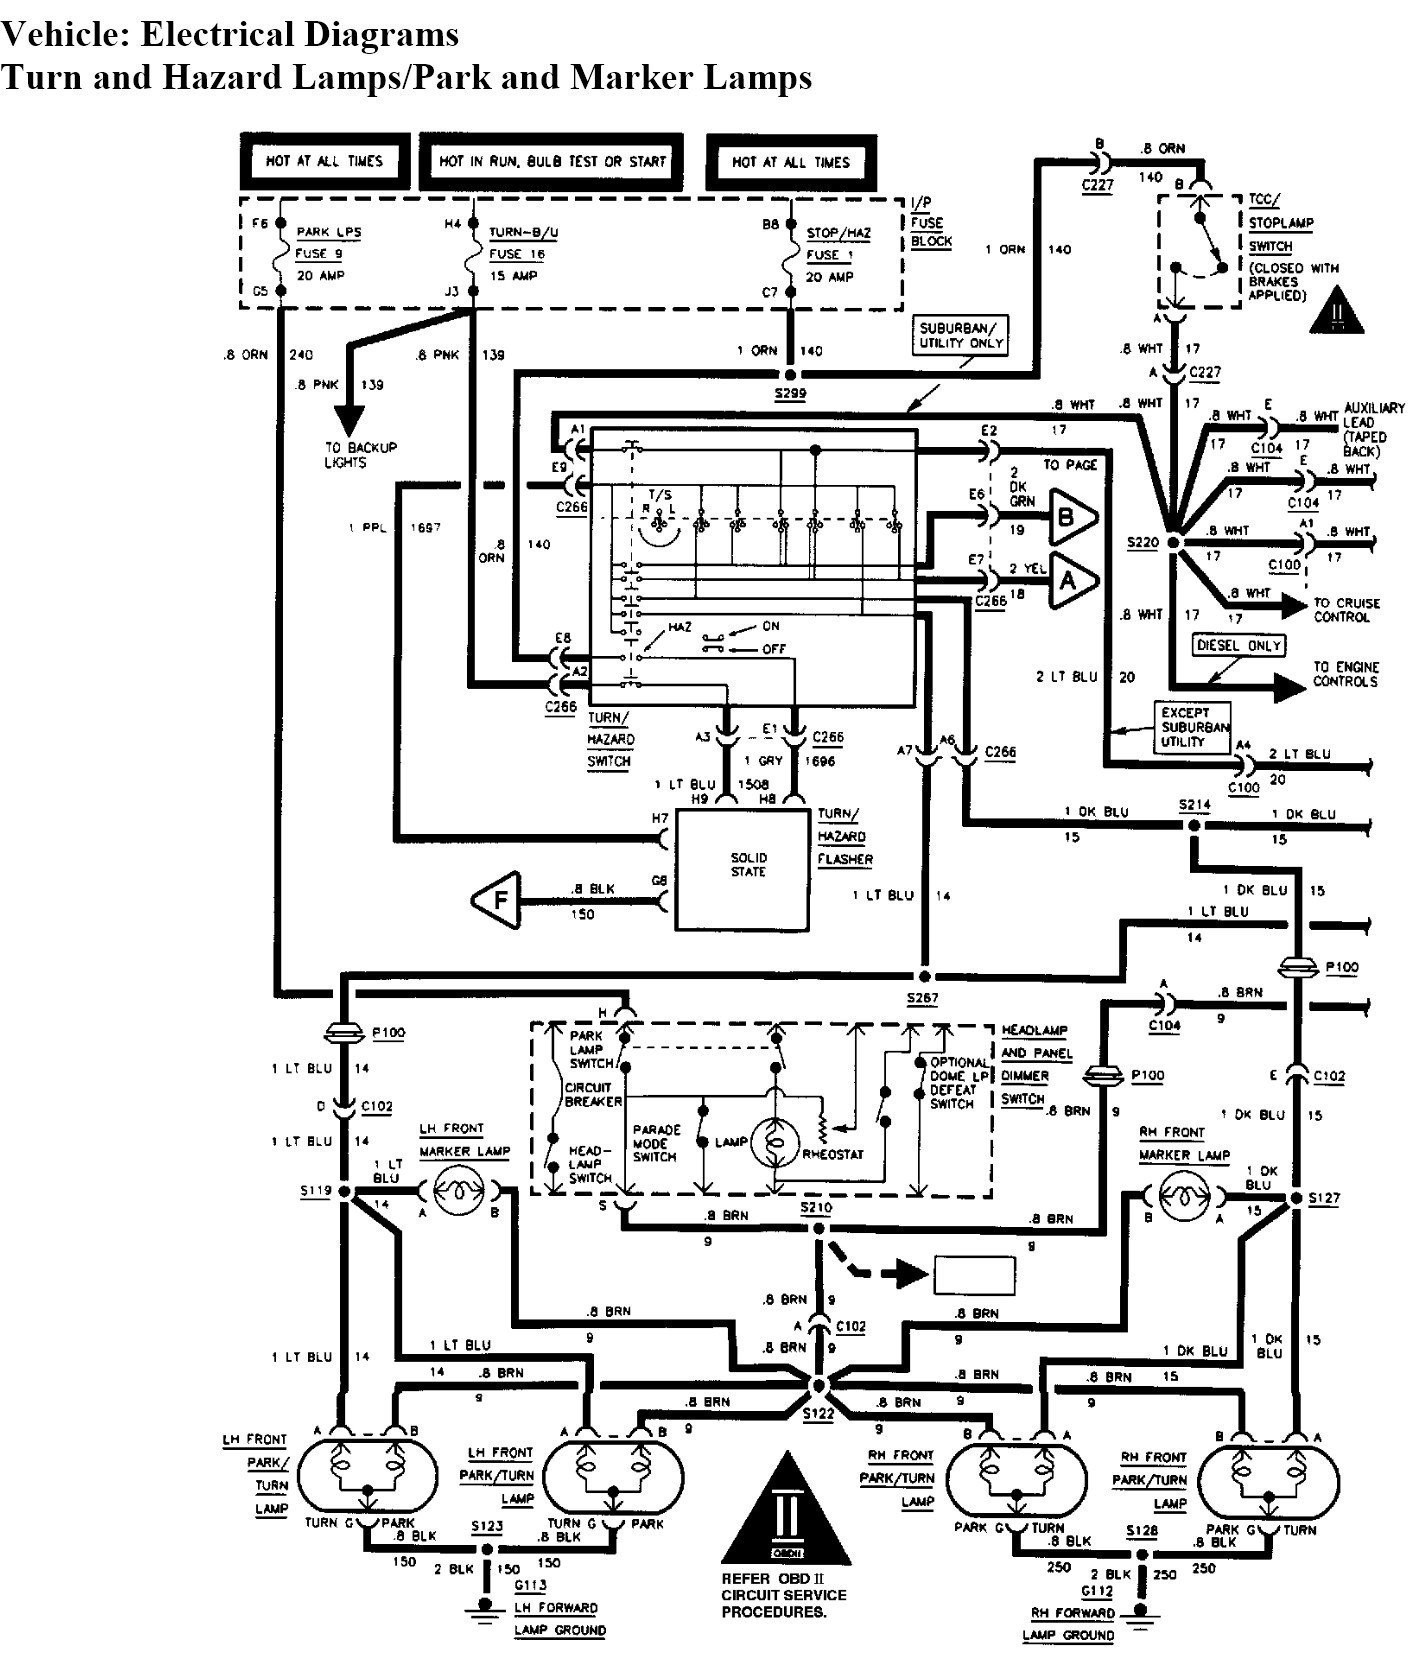 1994 chevy truck brake light wiring diagram 1979 chevy c10